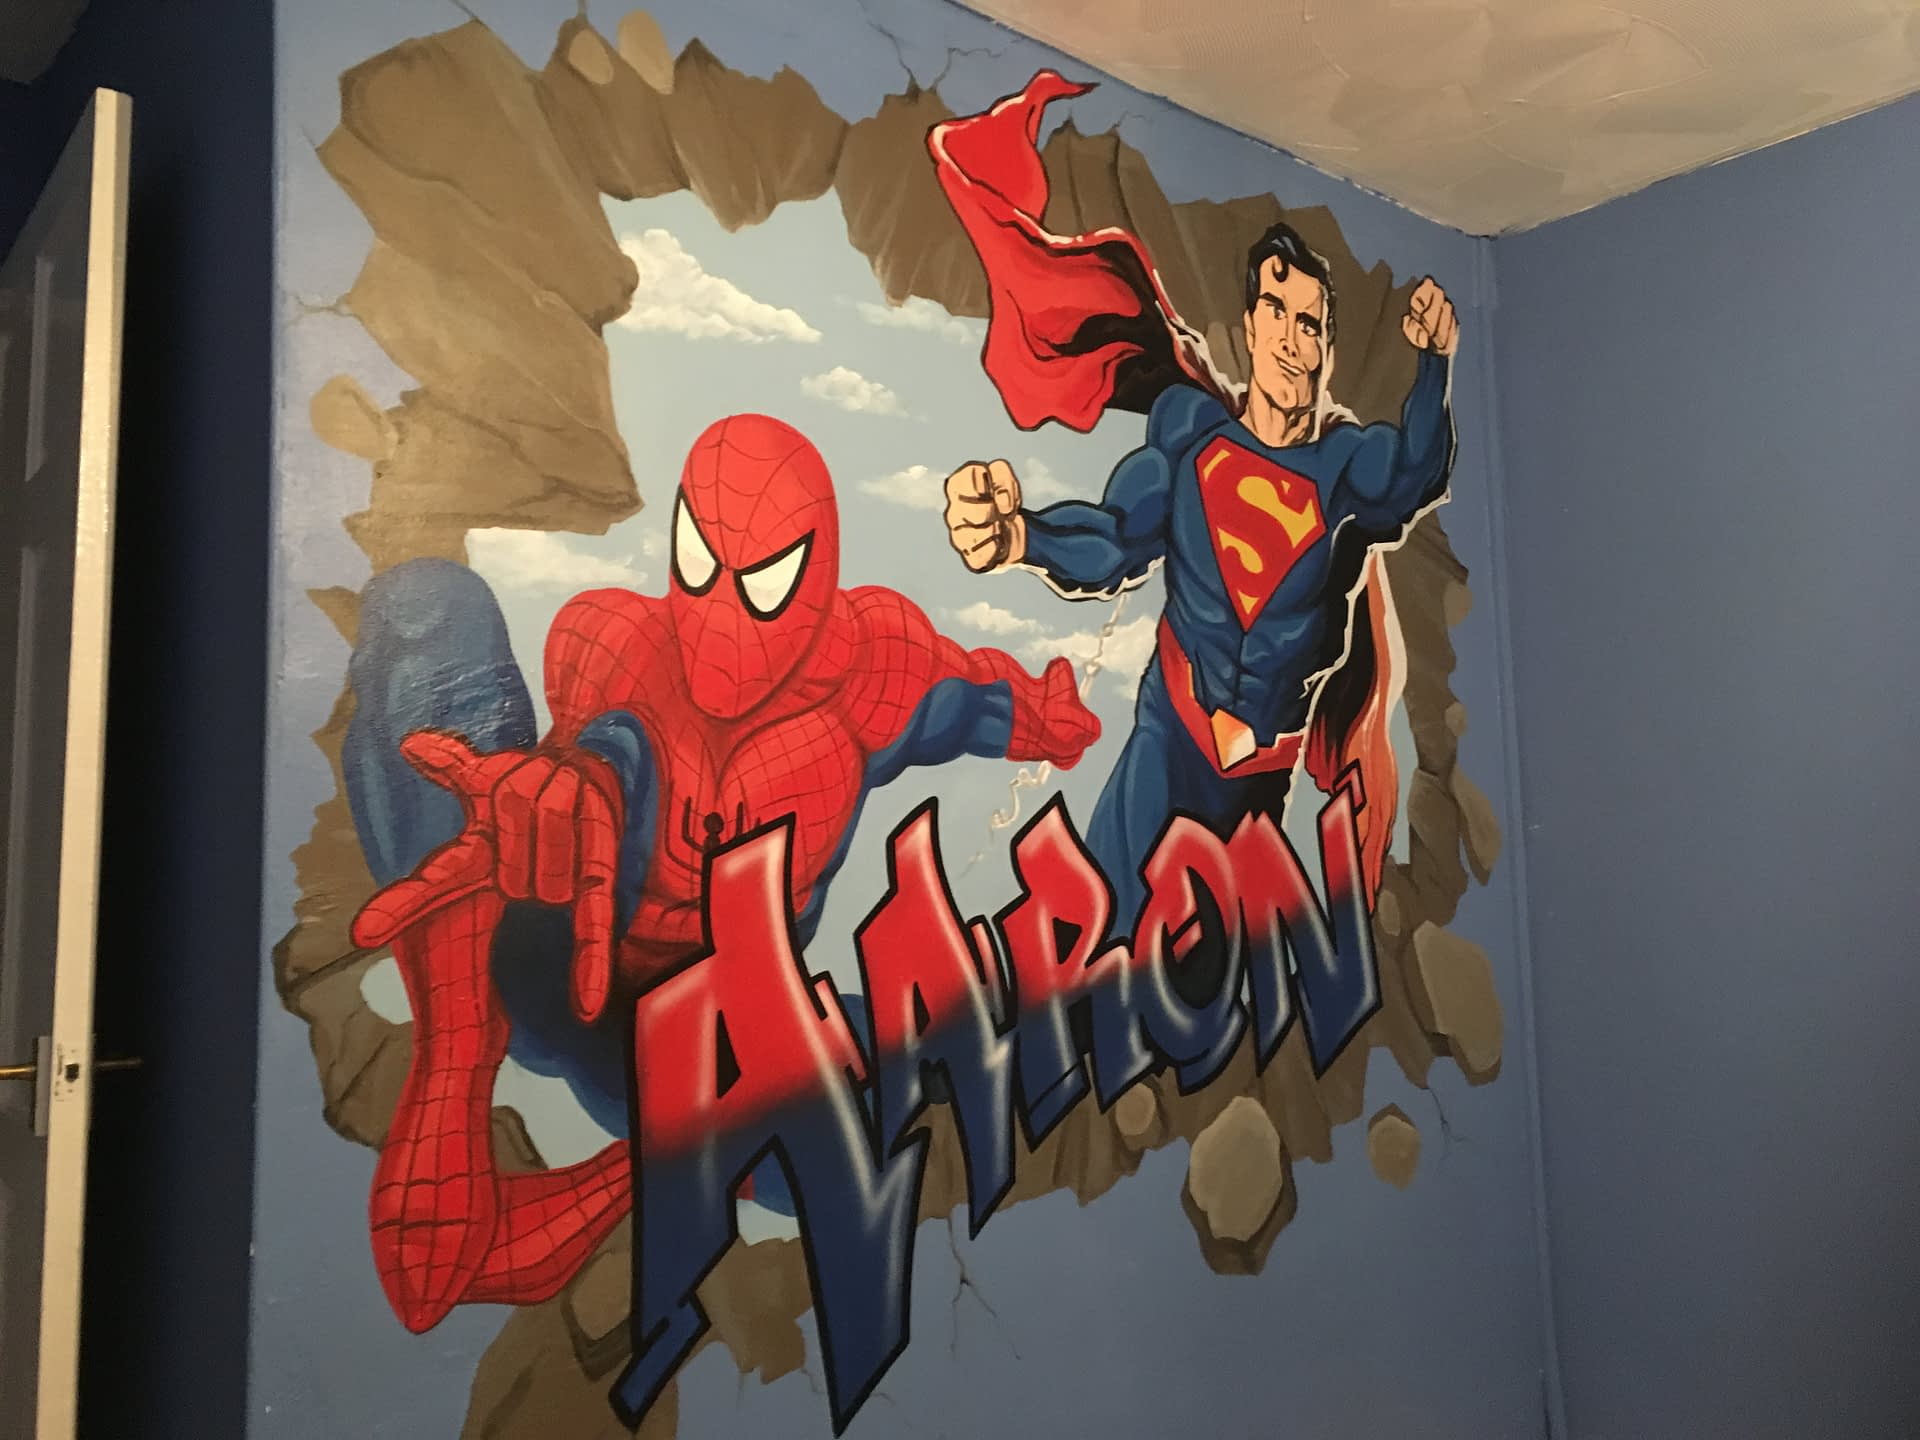 Aaron Graff / Spiderman & Superman